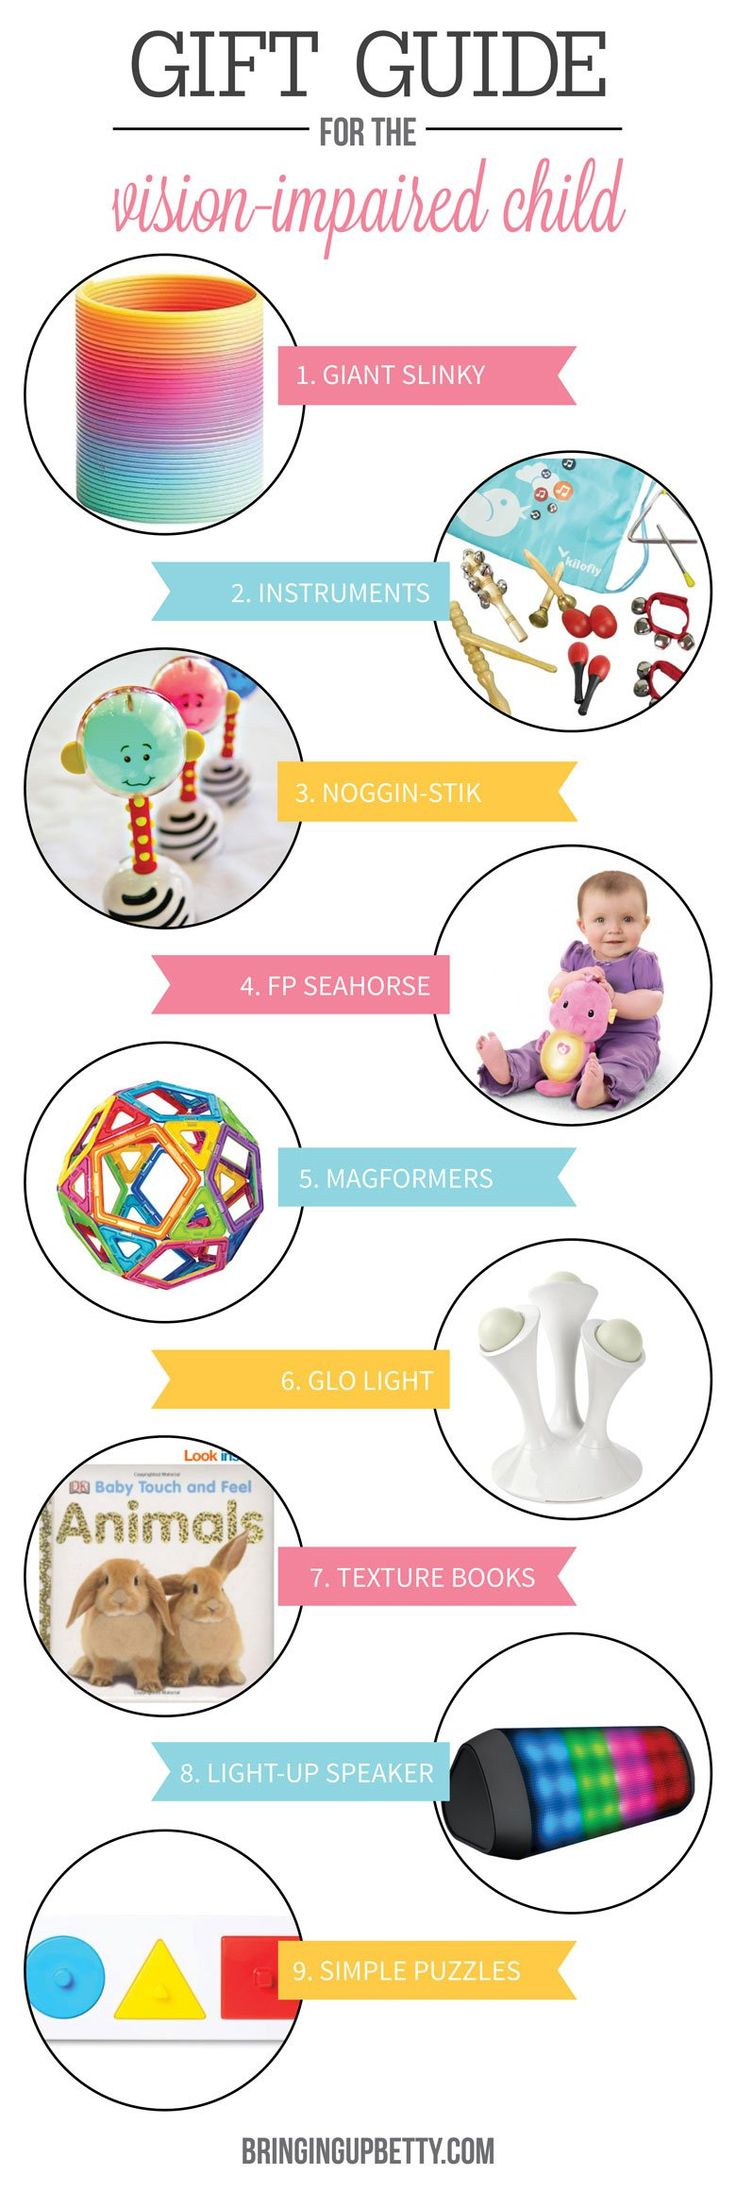 Great ideas for Christmas and Hanukkah presents for children who are blind or visually impaired!